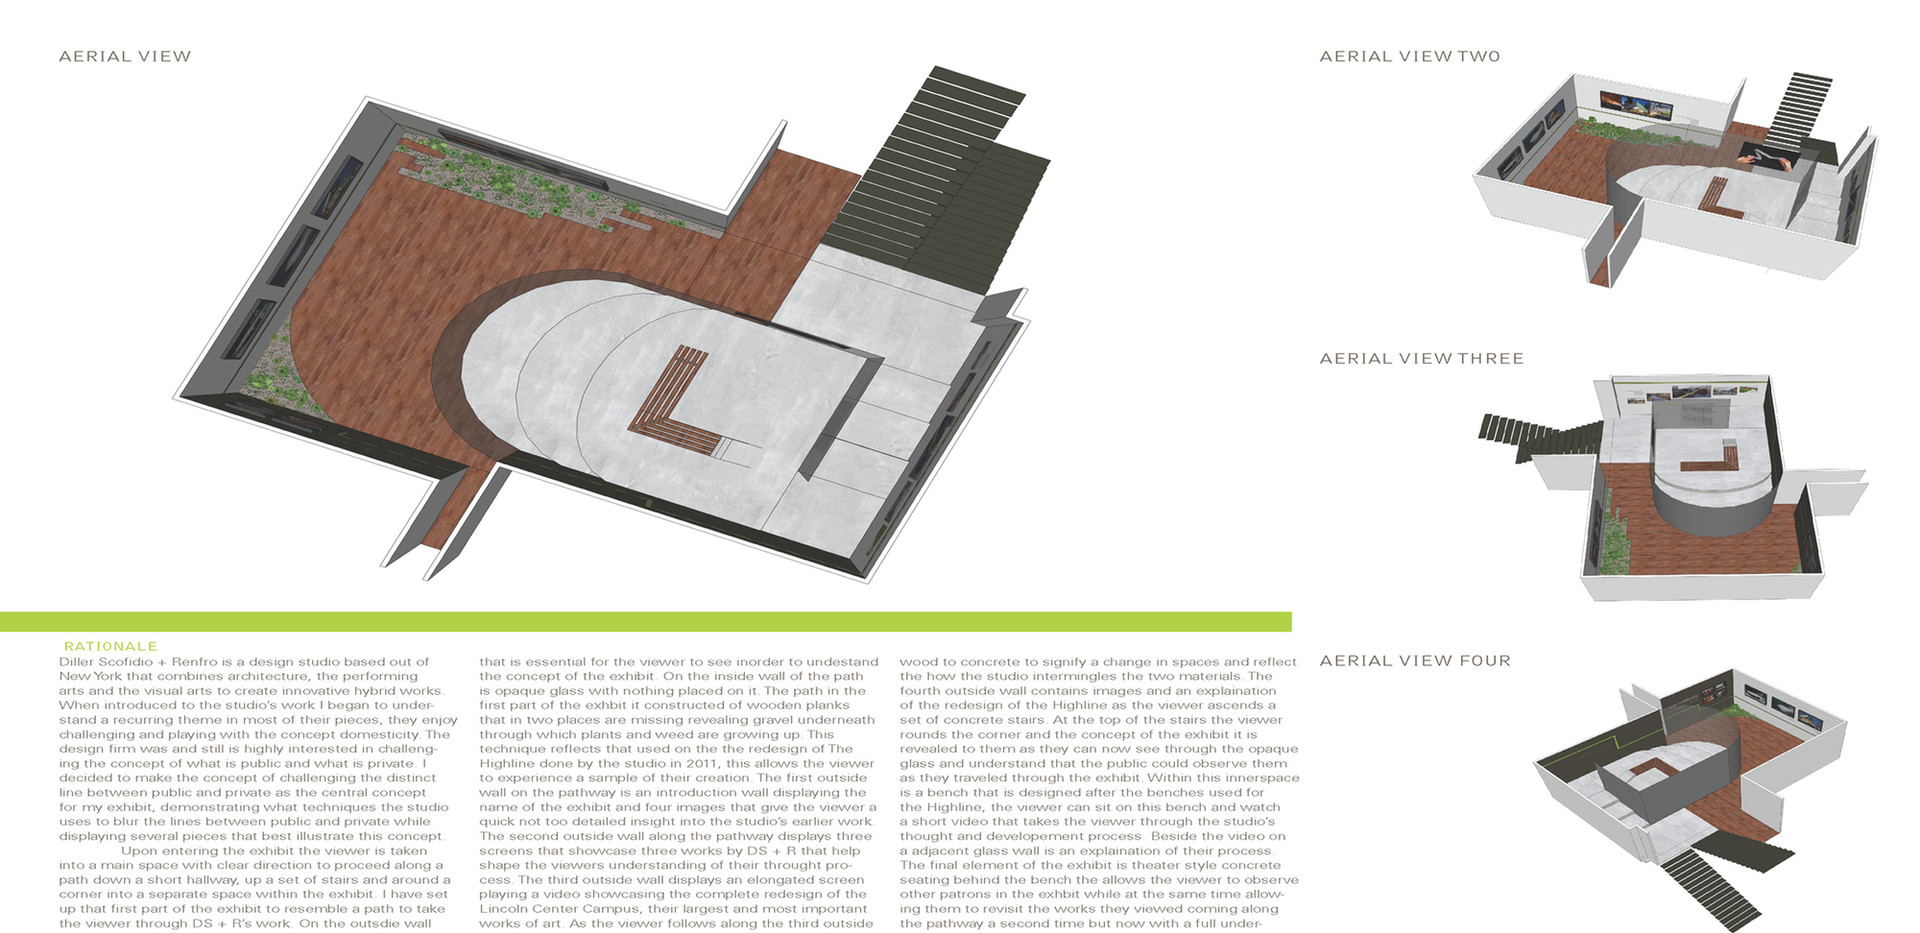 4_DILLER SCOFIDIO +5x8RENFRO FINAL_Page_